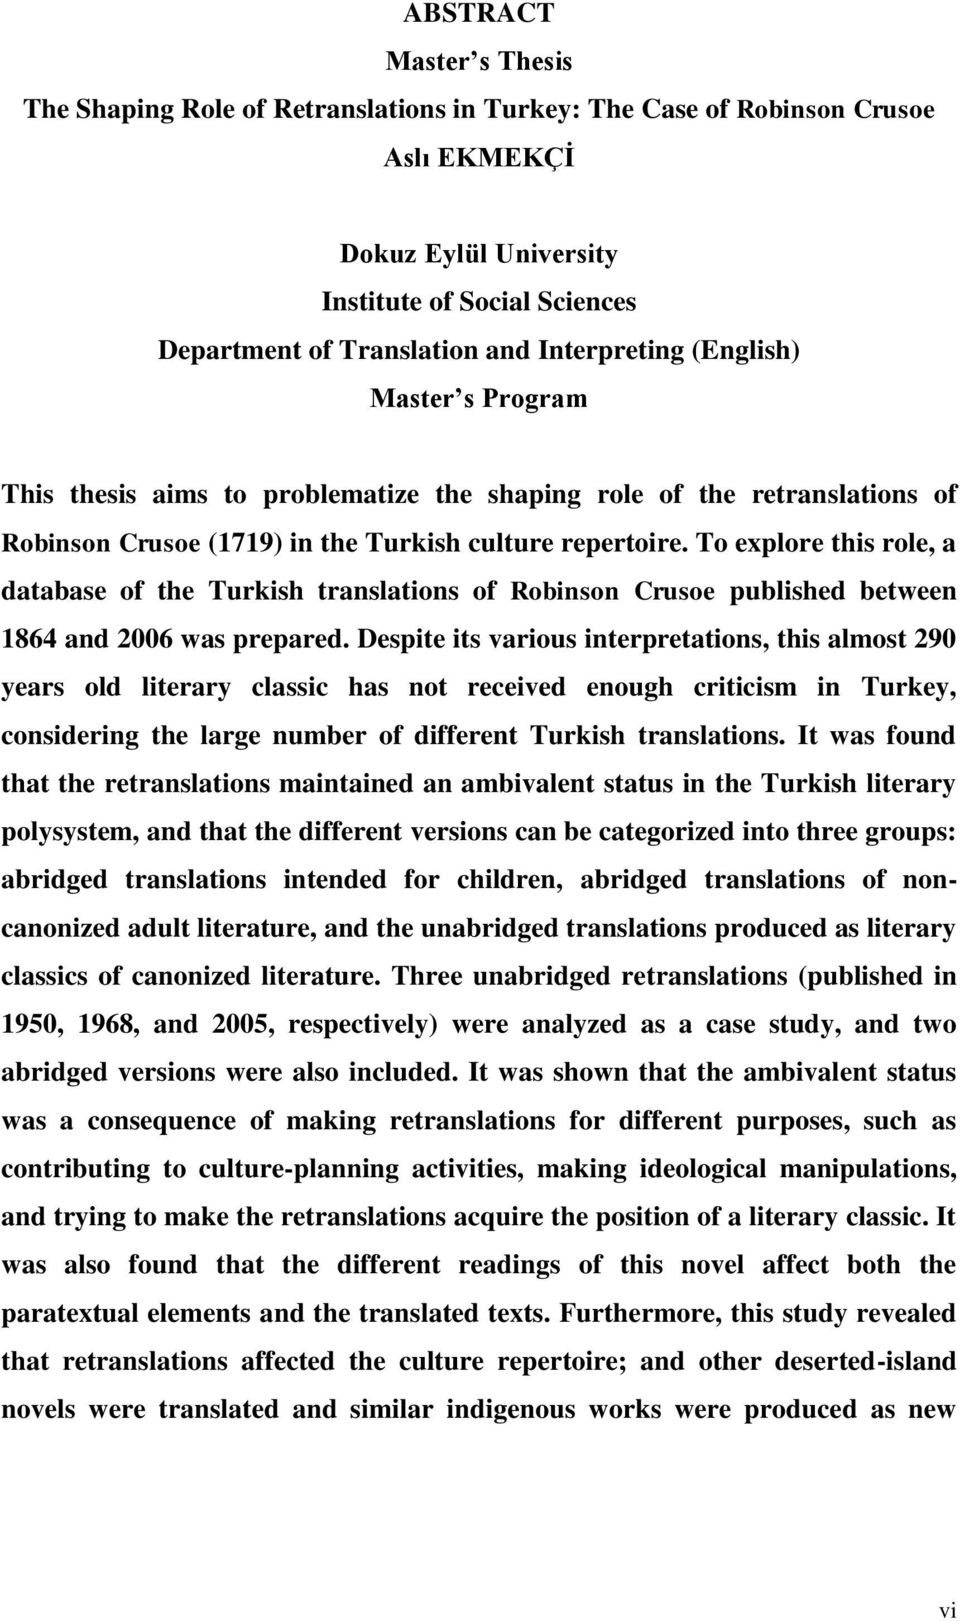 To explore this role, a database of the Turkish translations of Crusoe published between 1864 and 2006 was prepared.